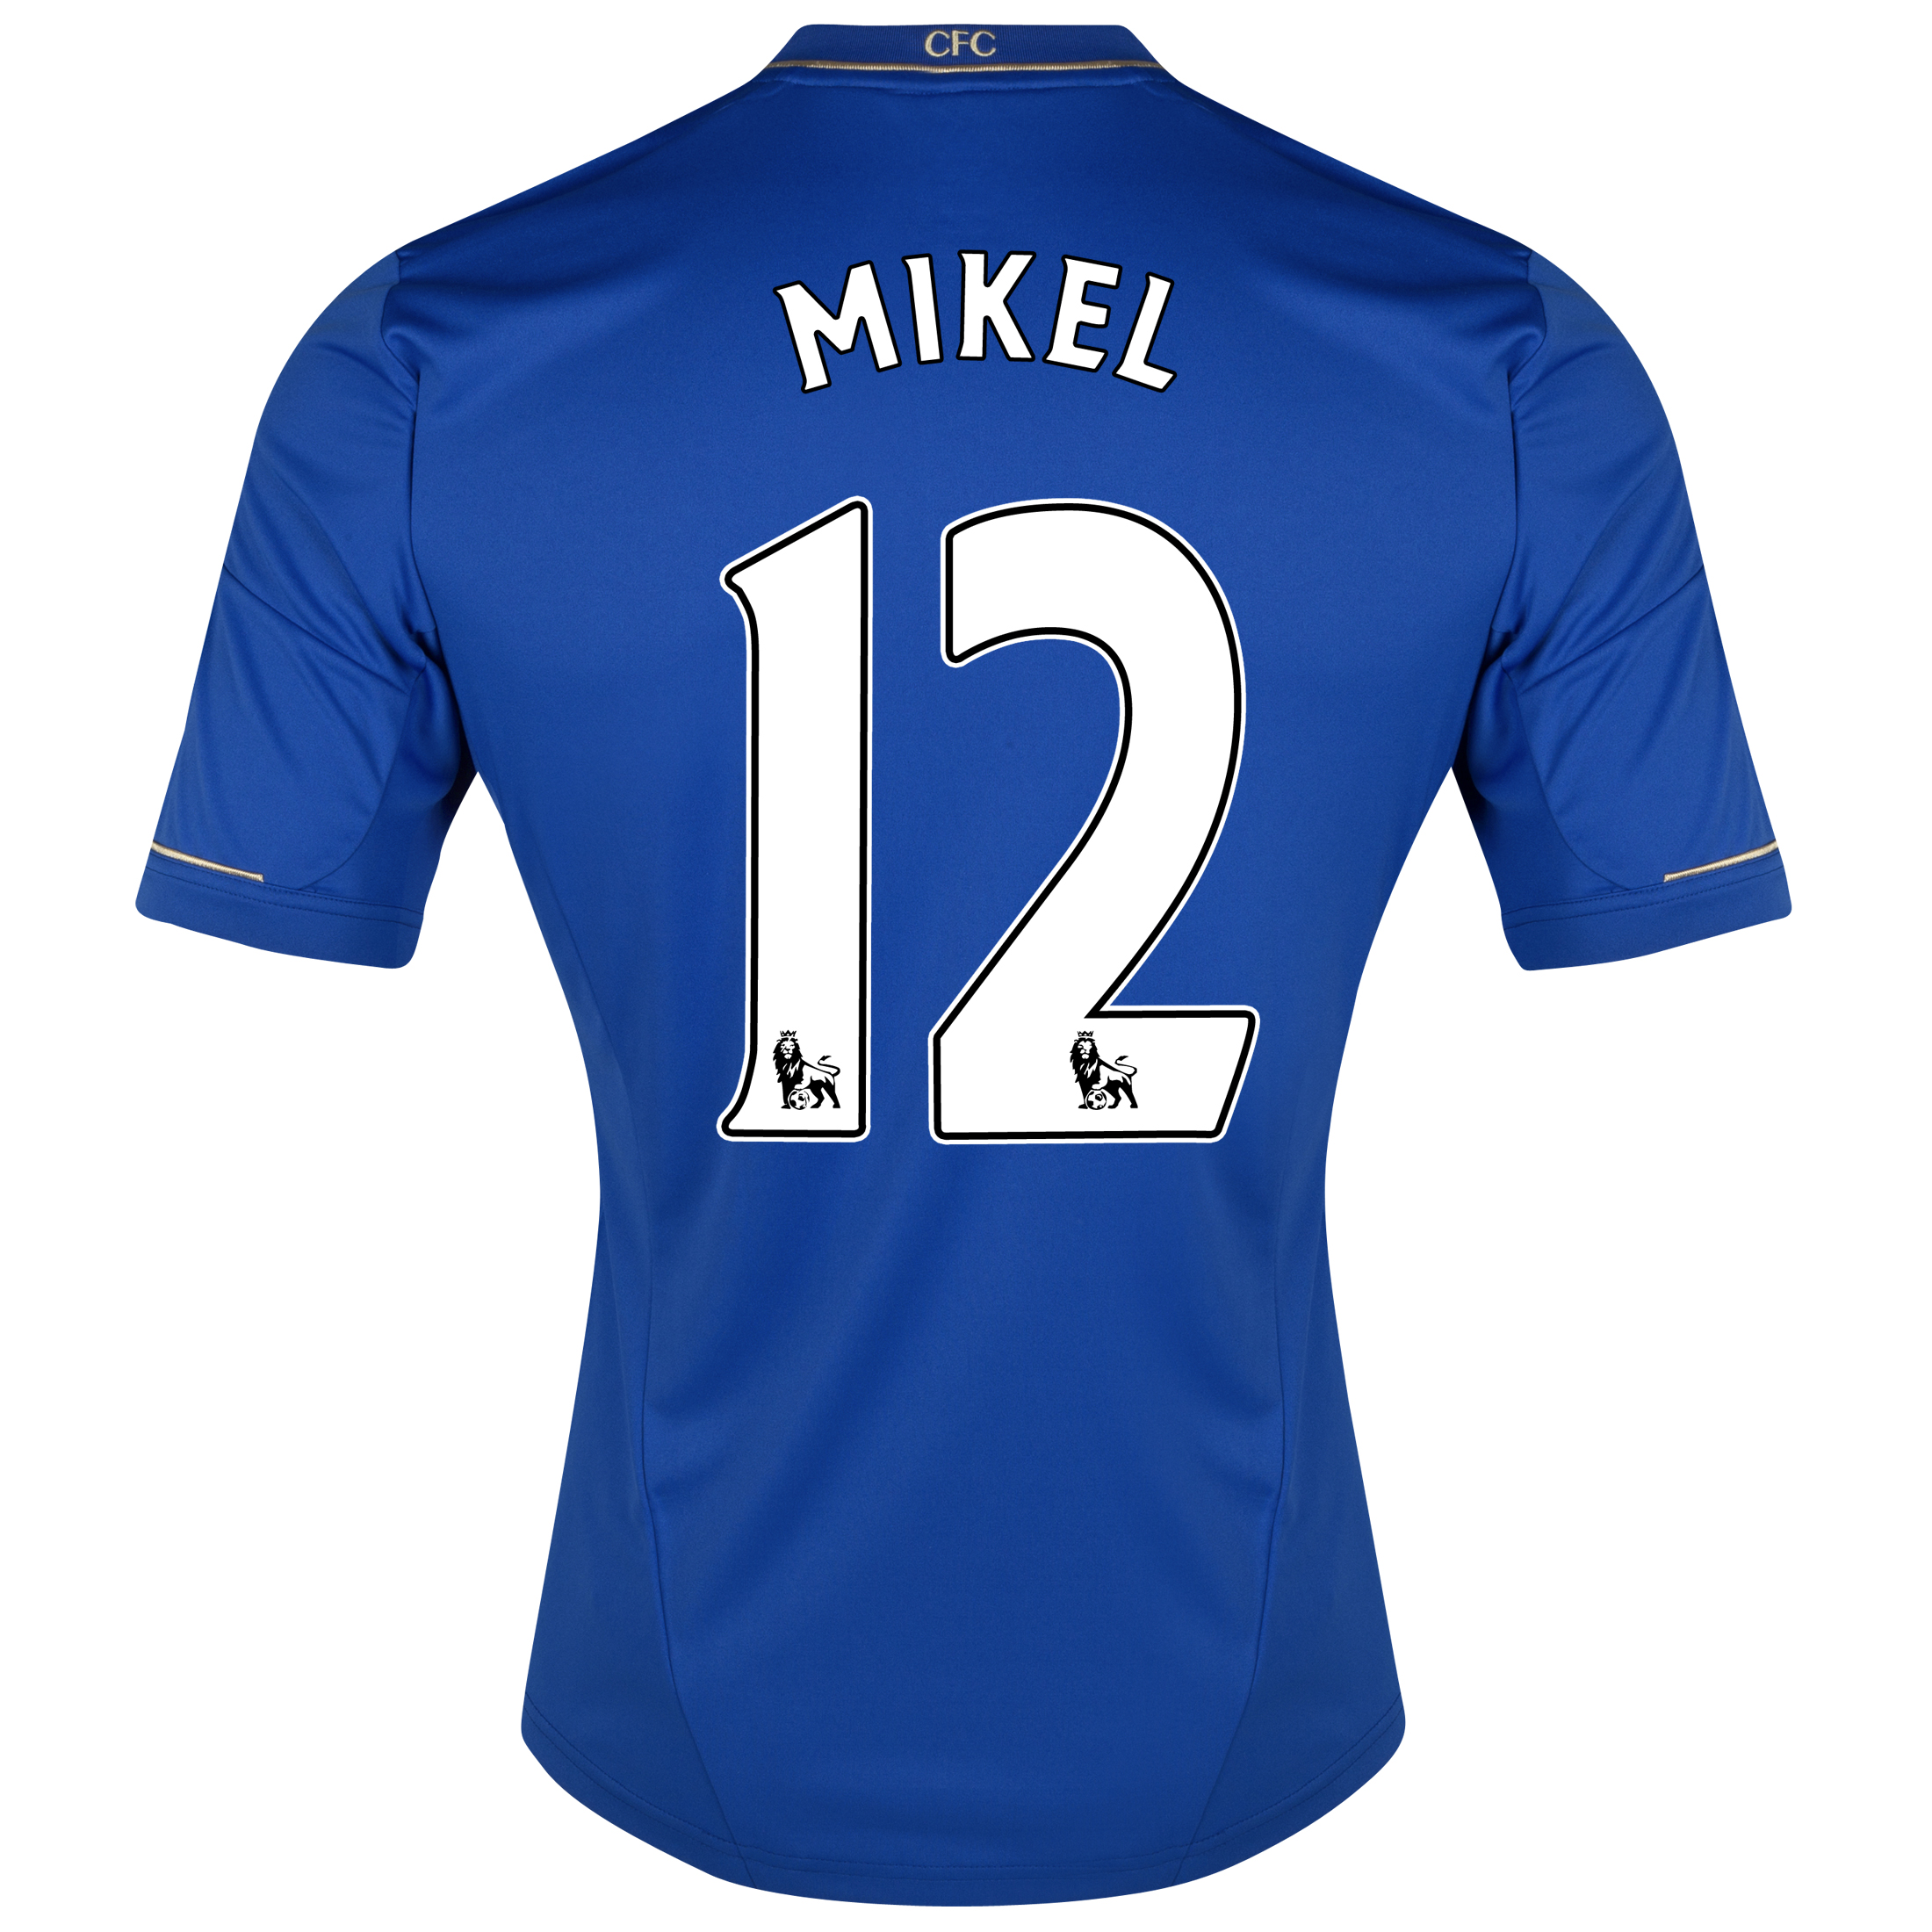 Chelsea Home Shirt 2012/13 - Youths with Mikel 12 printing